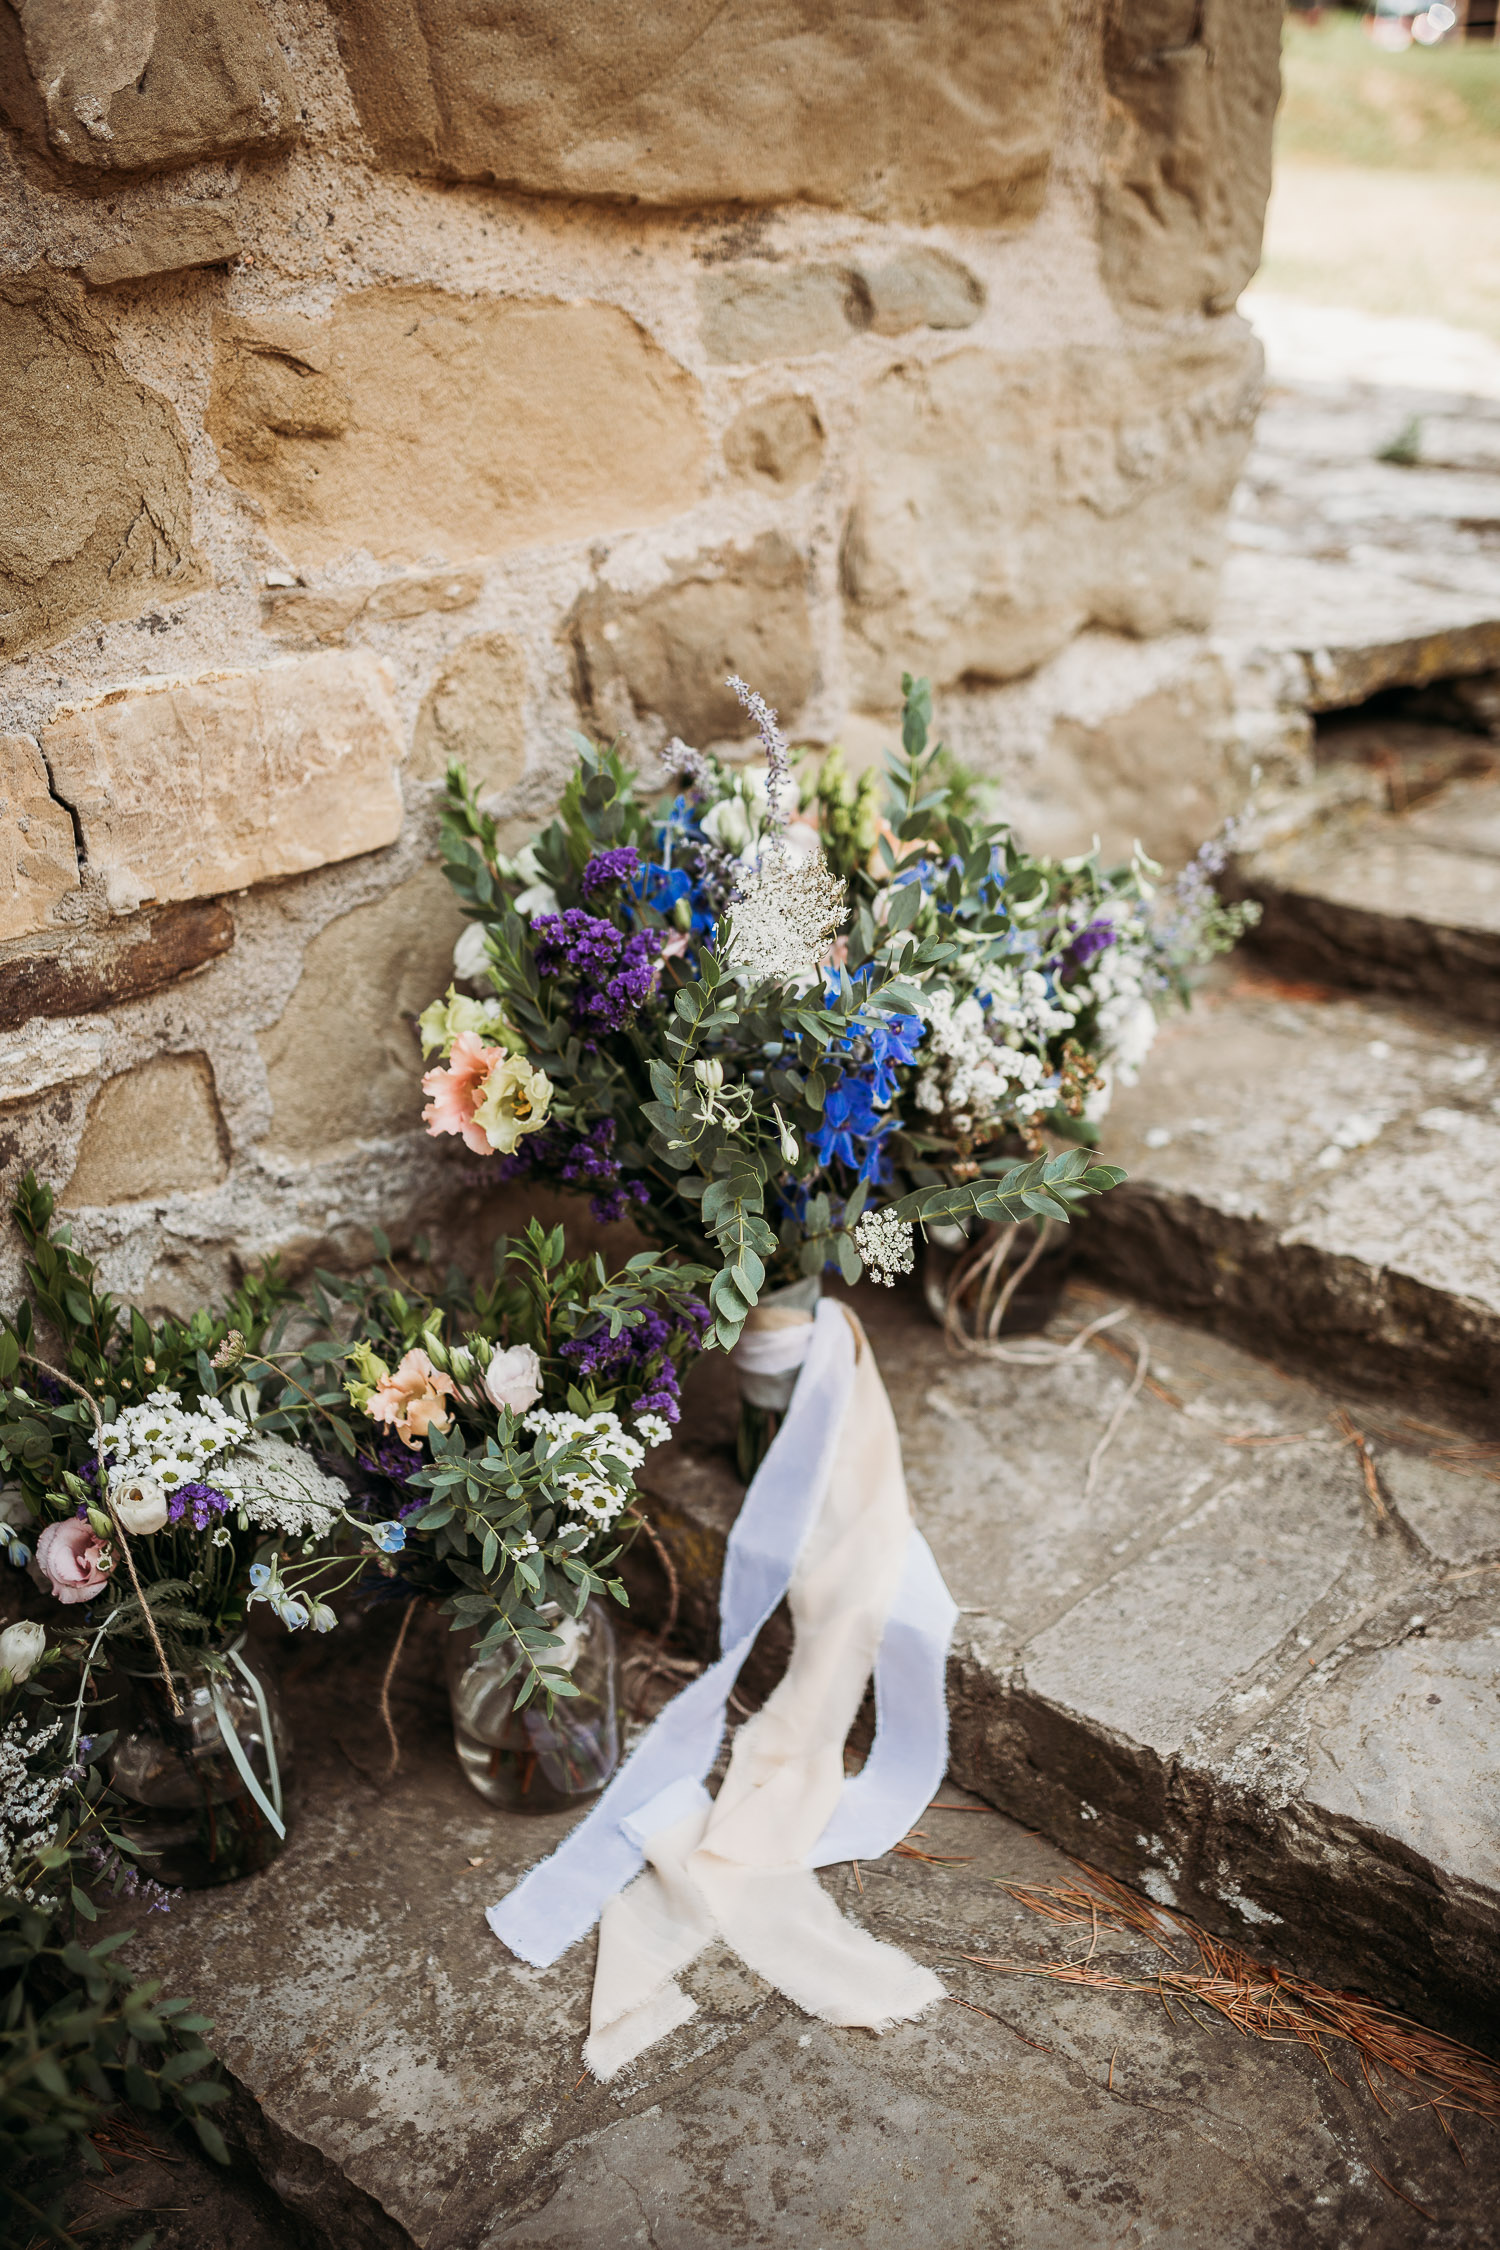 Romantic wedding bouquet with wildflowers